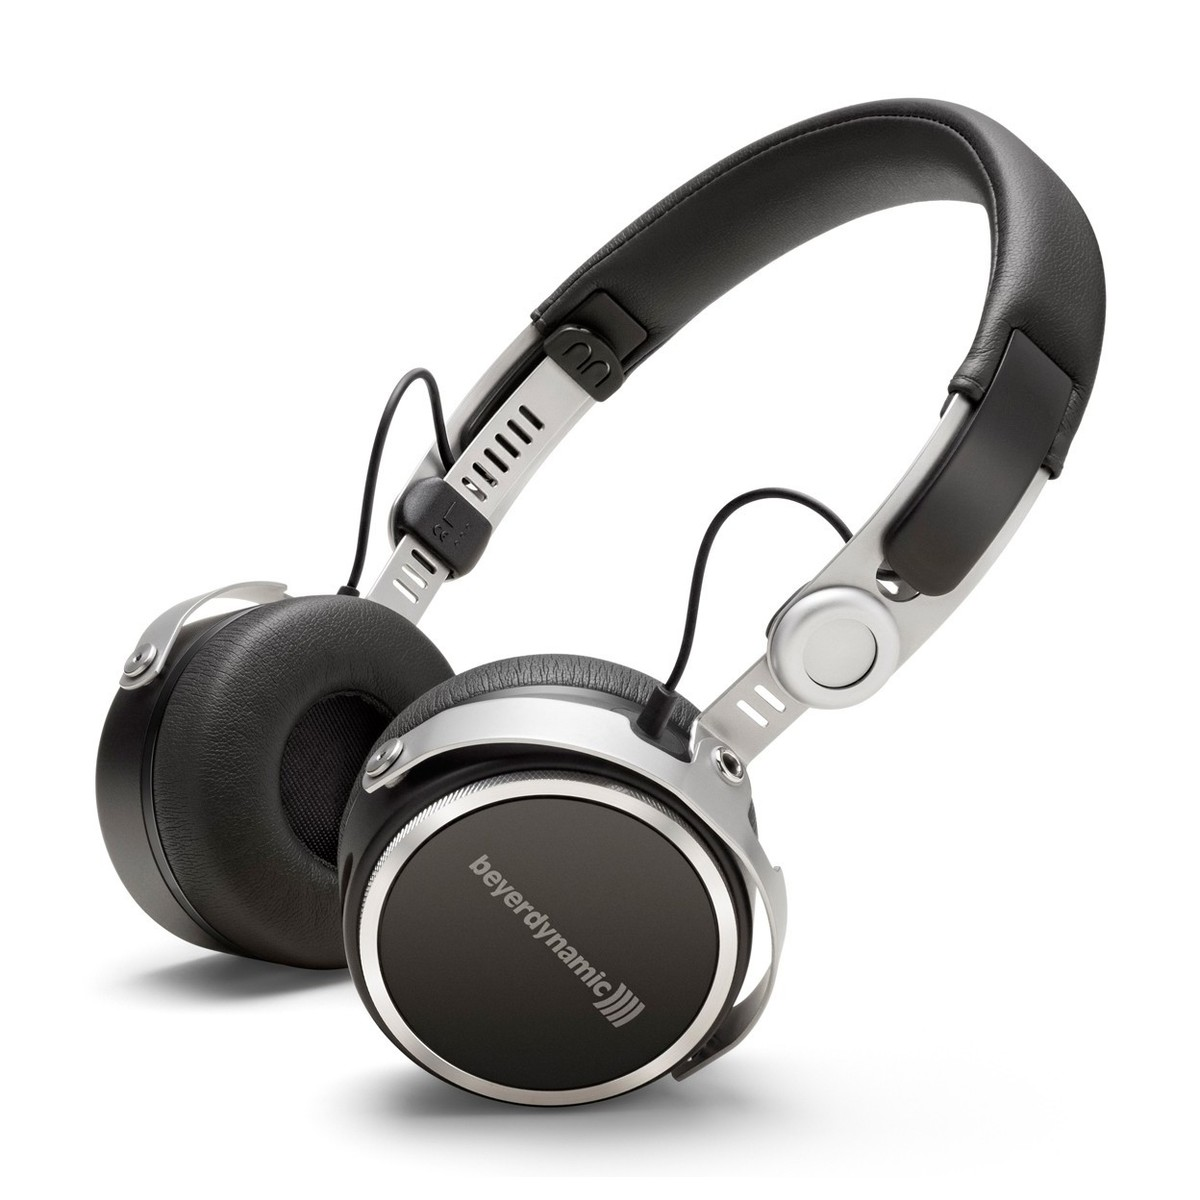 Beyerdynamic Aventho Wireless Tesla Bluetooth Headphones Black At A Wiring Output Jack Prs Front Angled Main Image Loading Zoom